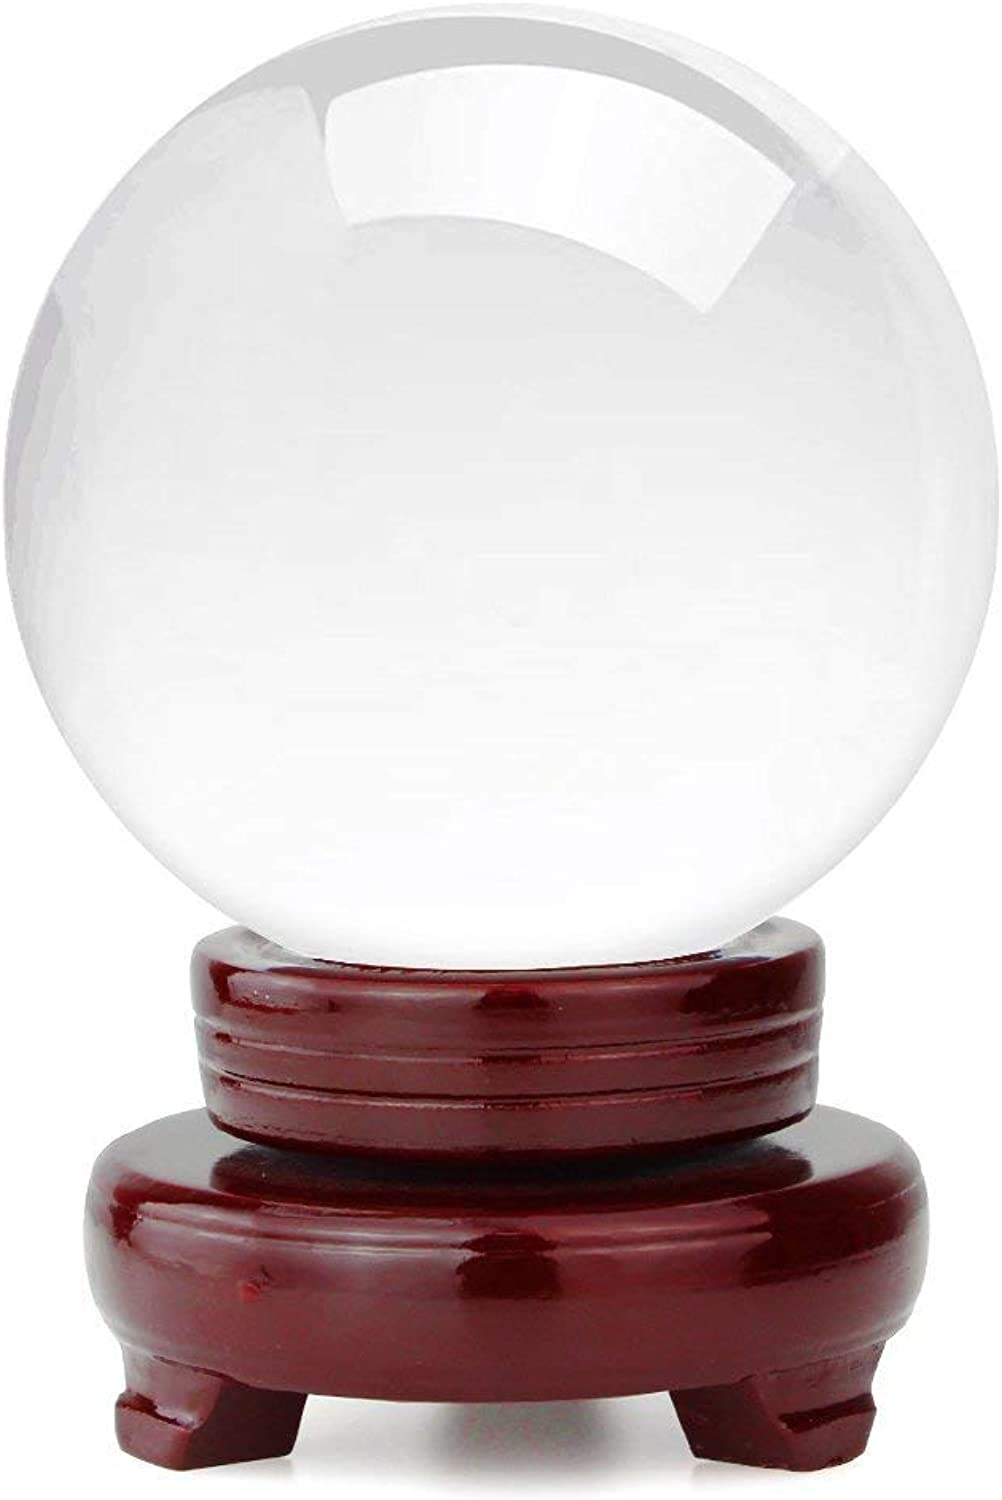 OwnMy Crystal Ball Photography Healing Meditation Ball Glass Sphere Display with Stand (100mm   3.94 )